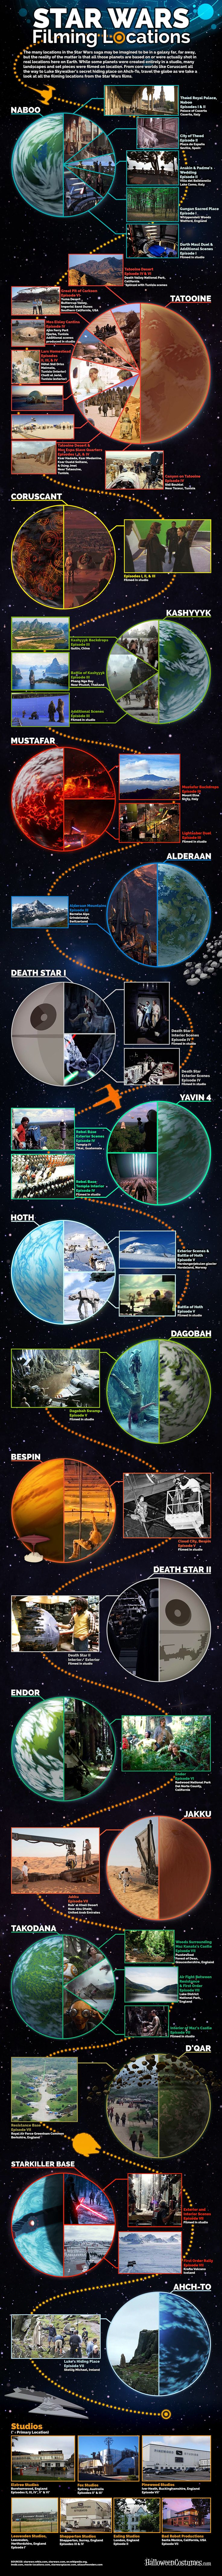 Star Wars Filming Locations Movie infographic #travel #film #geek